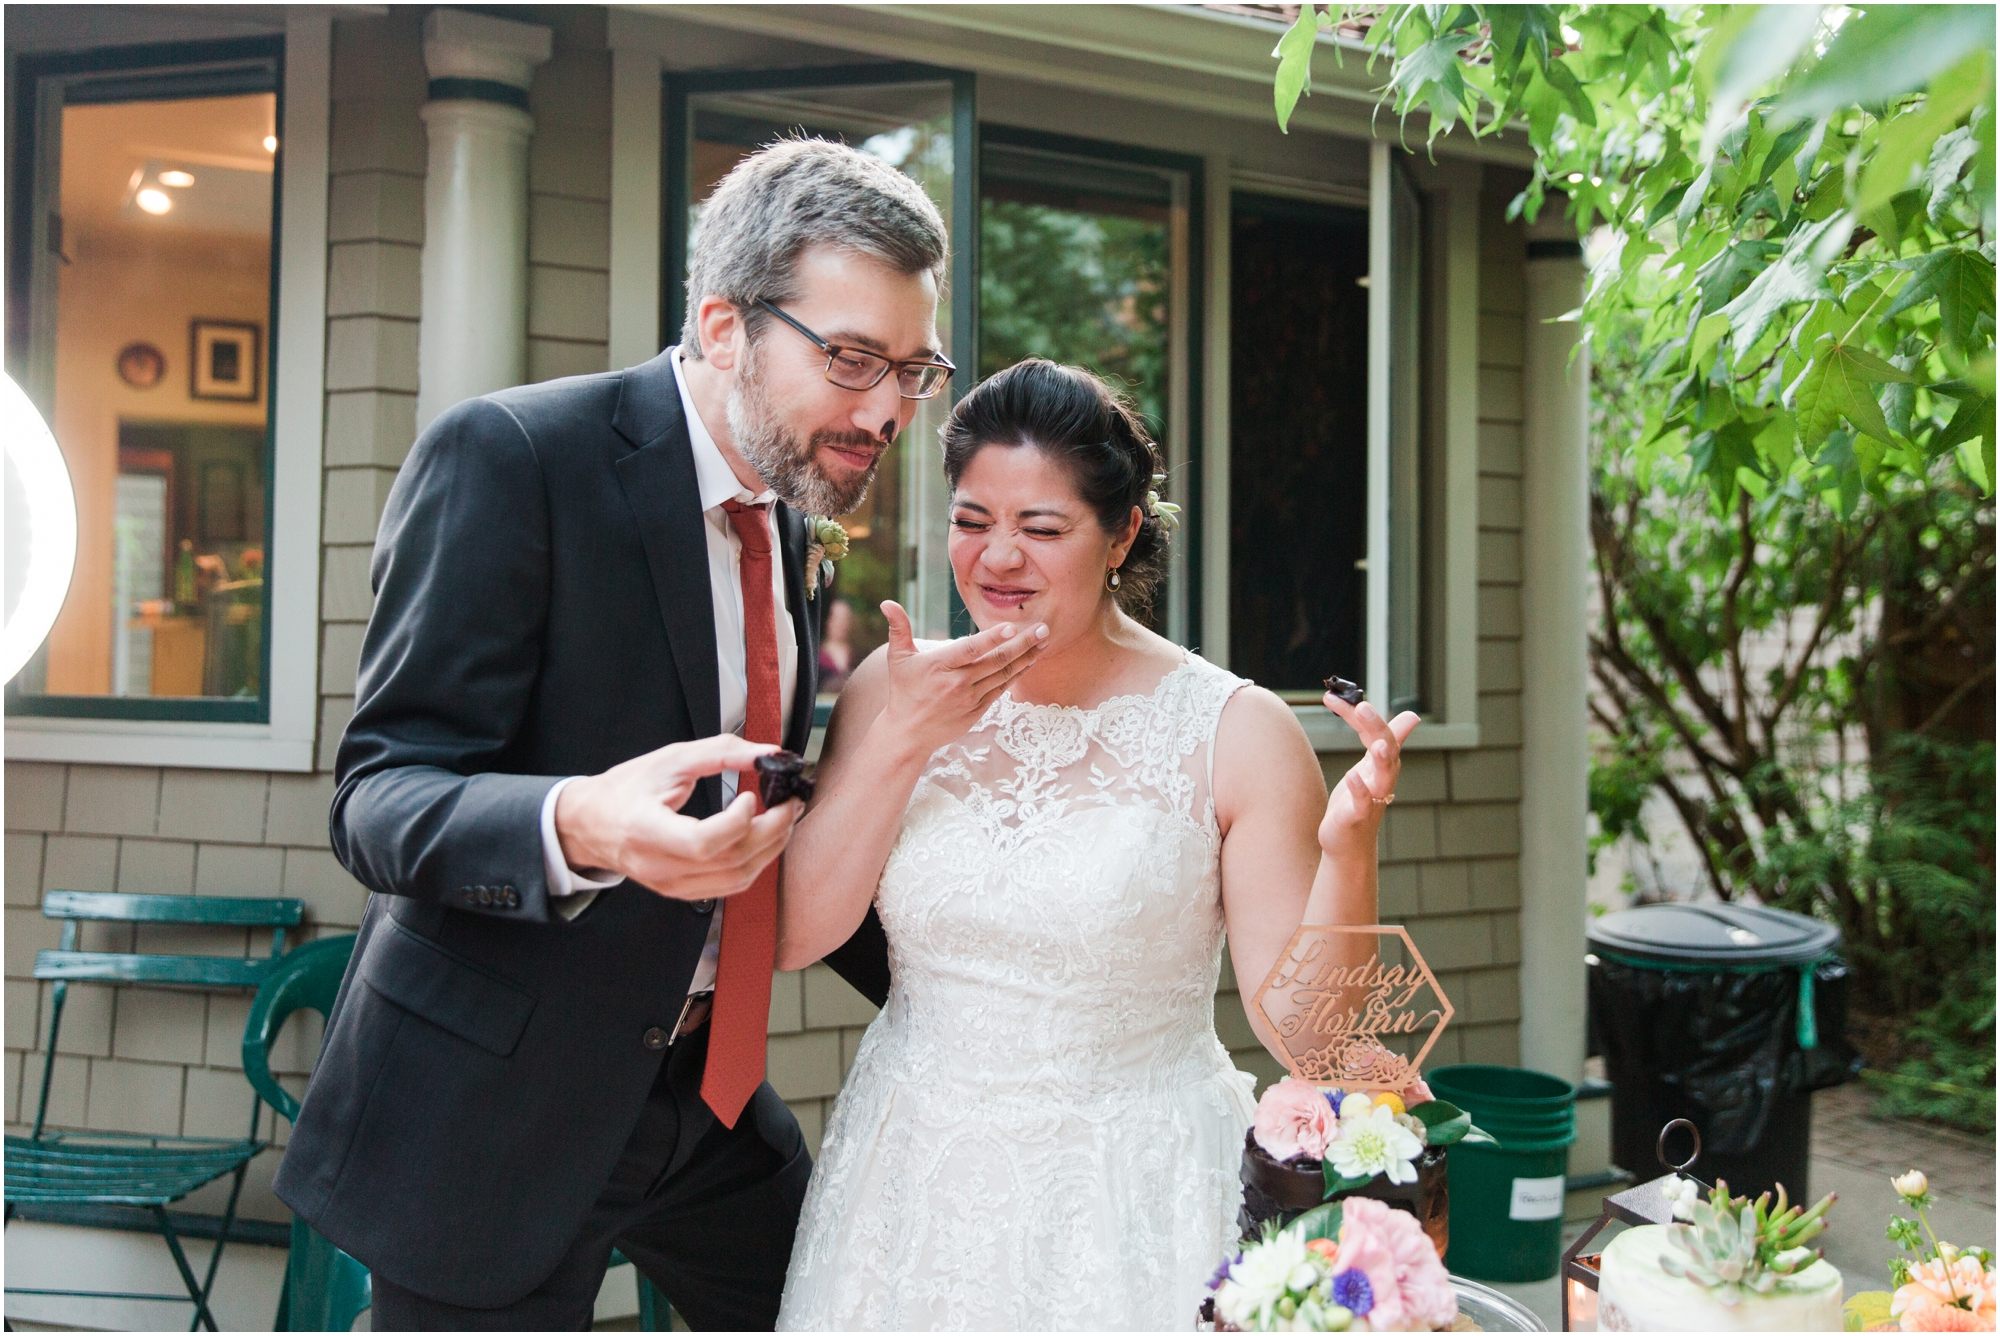 Garden wedding in Ellensburg, WA. Photos by Briana Calderon Photography based in the greater Seattle-Tacoma Area._1364.jpg